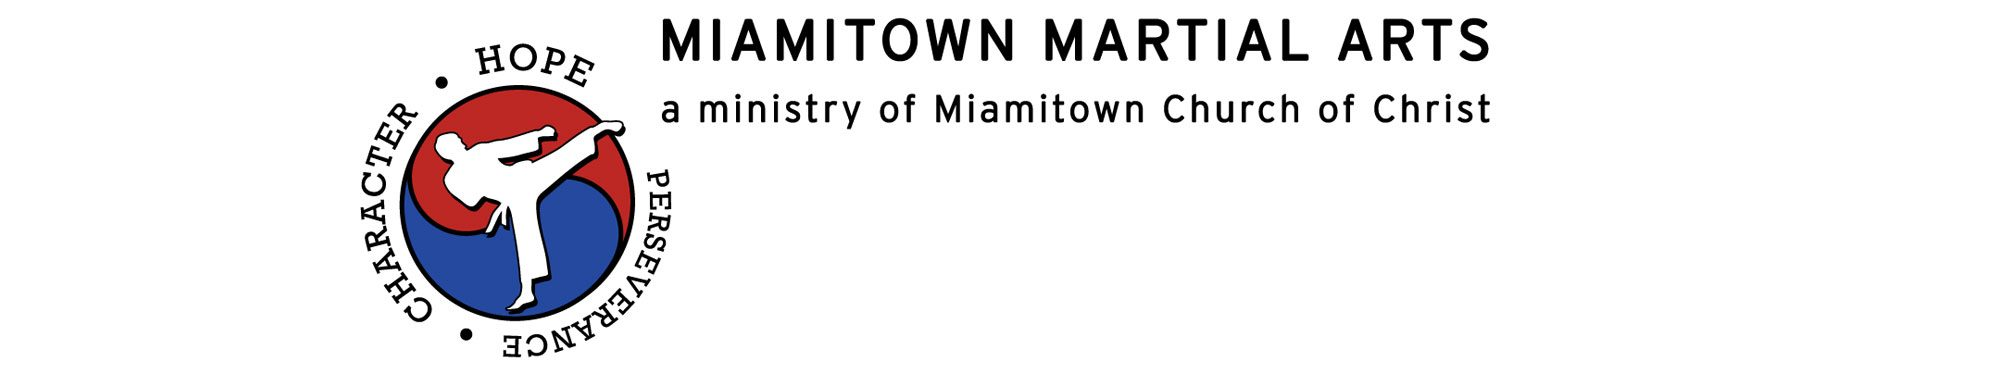 Miamitown Martial Arts Ministry